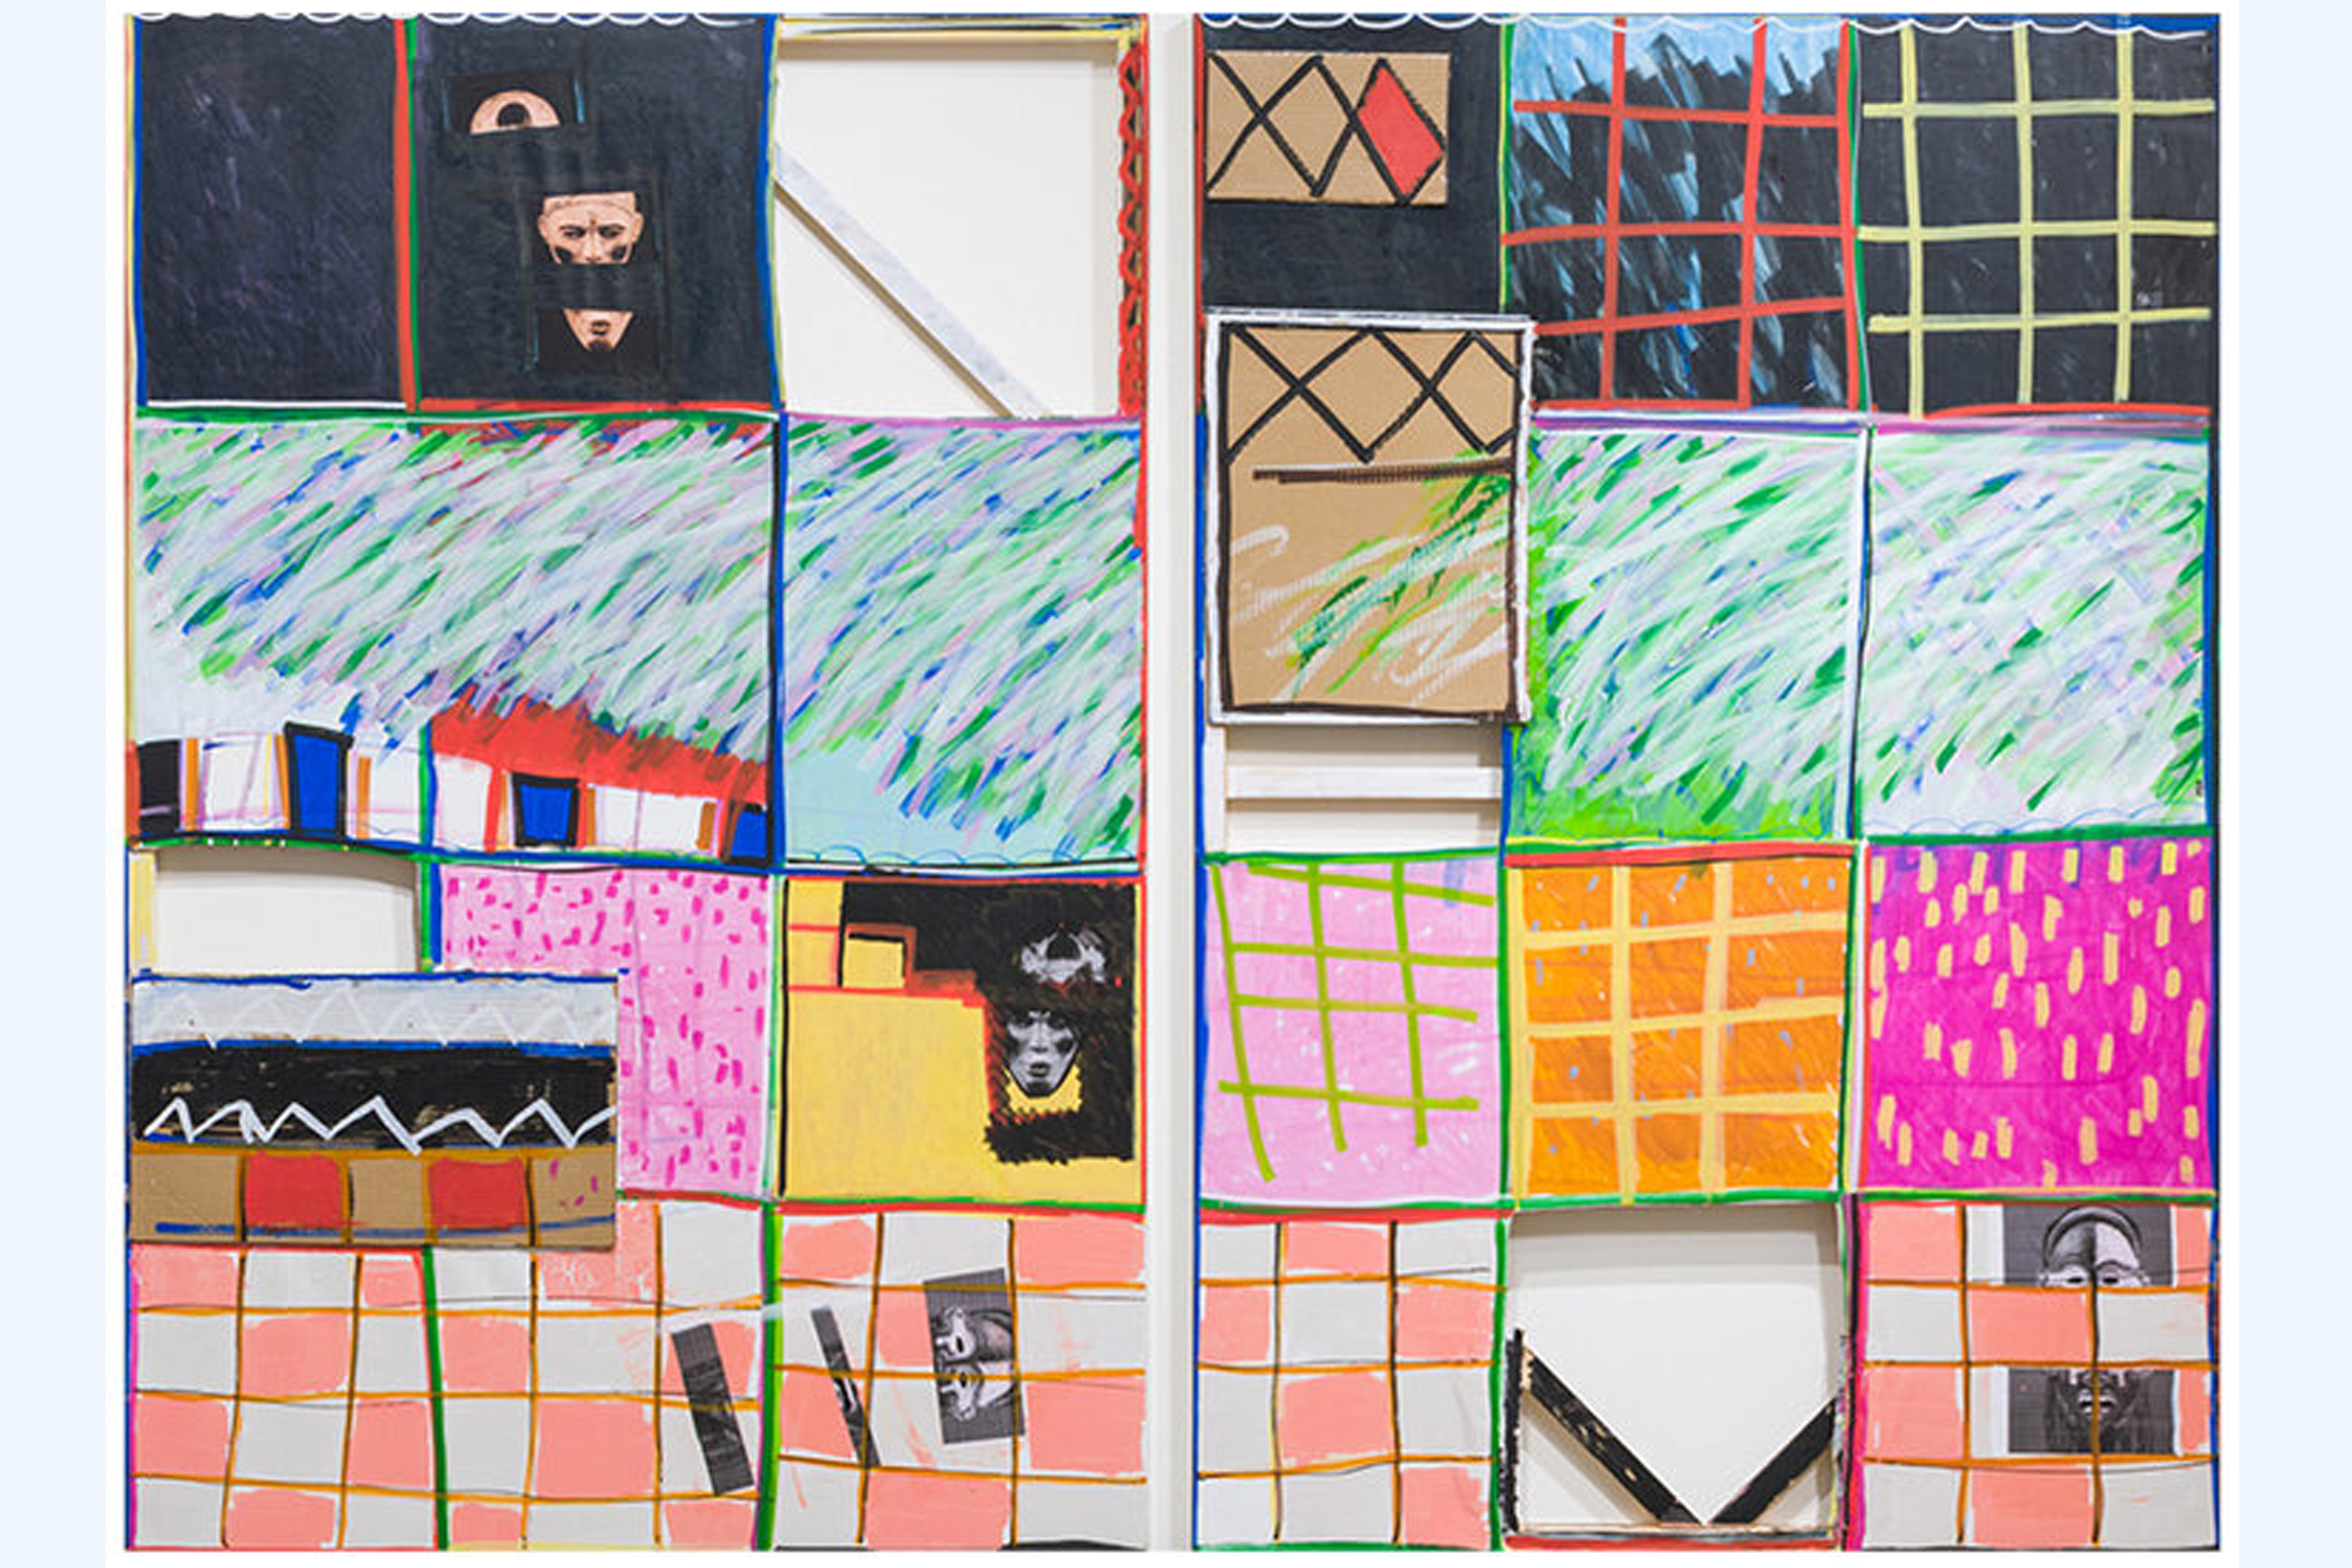 A diptych of rectangular, portrait orientation paintings. Each painting is a features a loose grid, with some of the grid's cells either cut out of the canvas leaving a void or layered over other cells. The individual cells are painted with a combination of gestural, grasslike lines, grids and checkerboards in various colors, and photographs collaged on a black paint background.